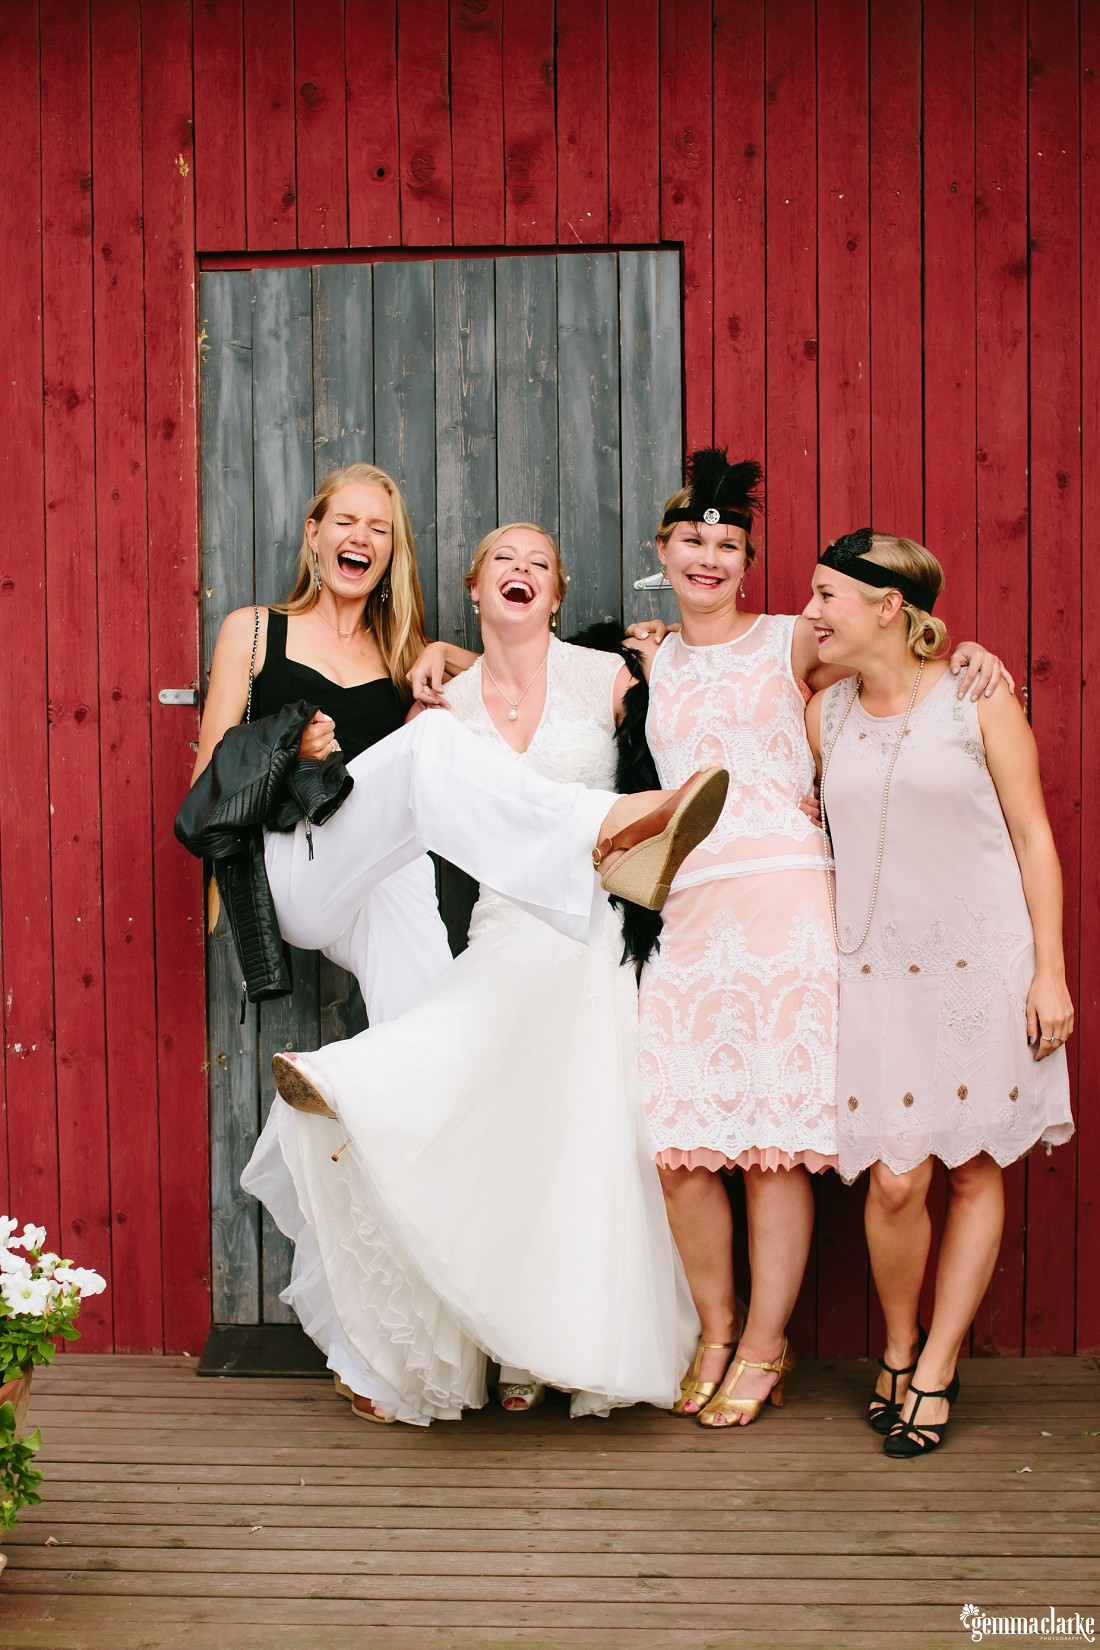 A bride posing with some of her guests in front of a red wooden building